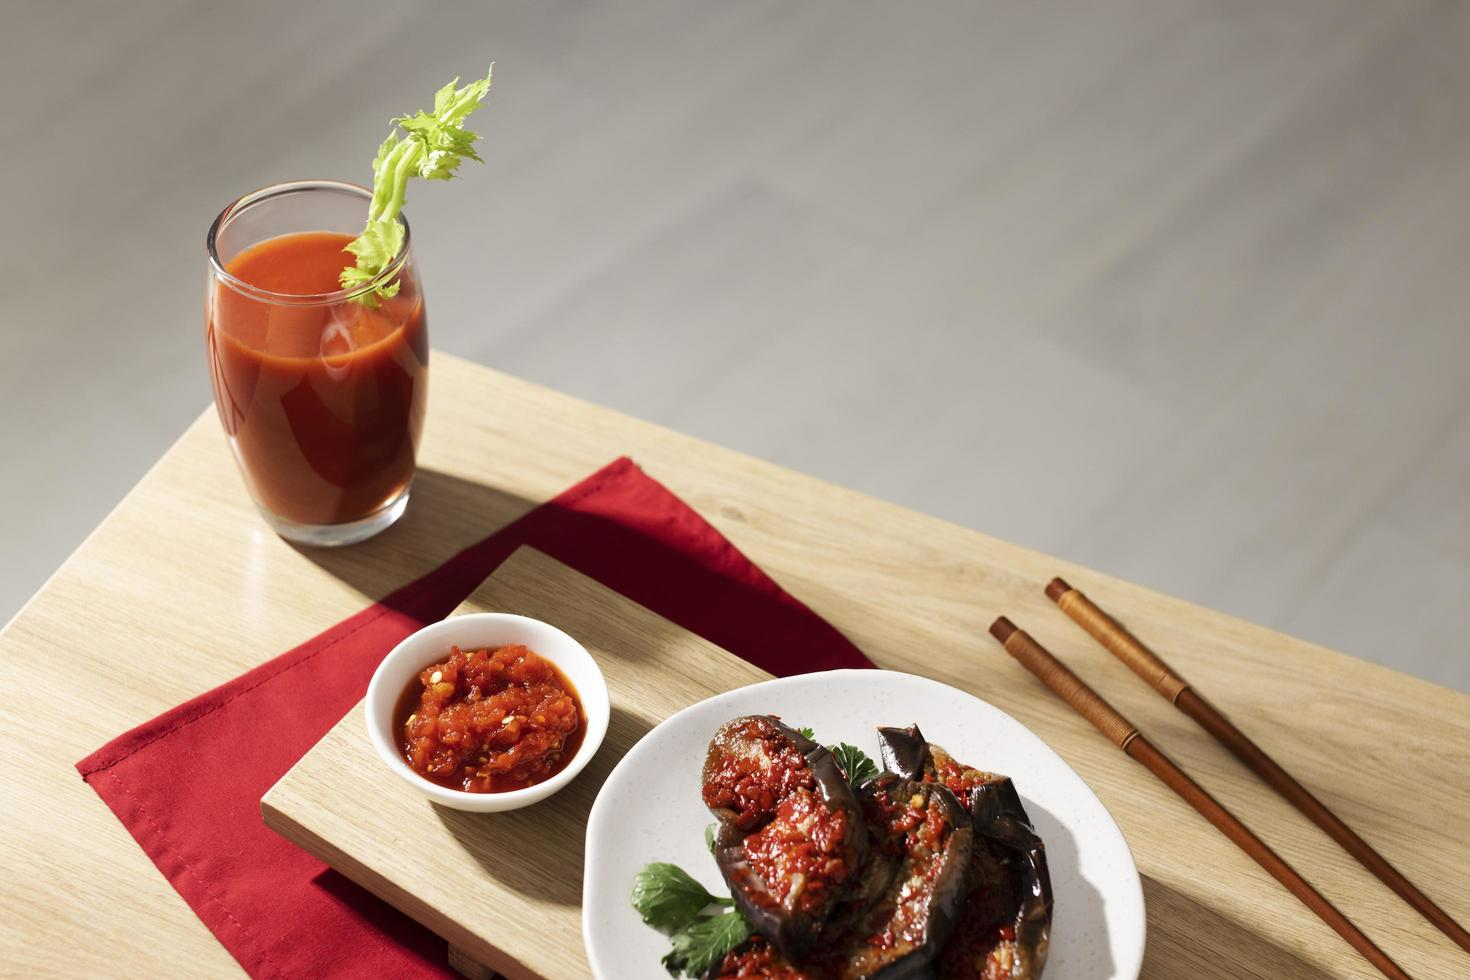 The nutritious meal with sambal arrangement photo